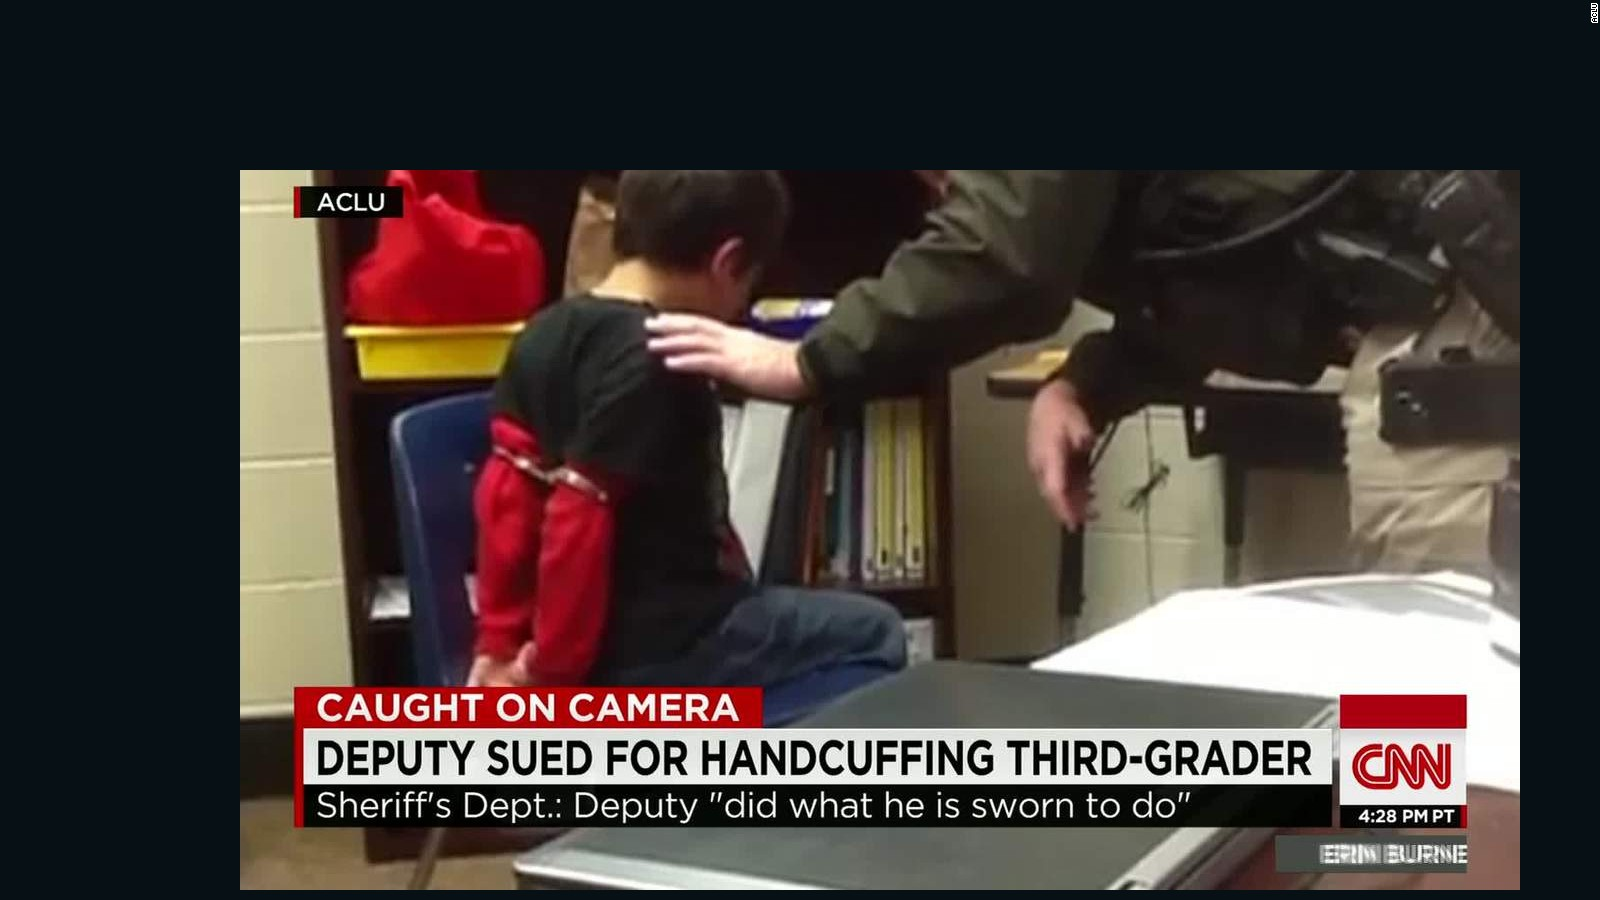 Handcuffing Little Kids May Not Be >> Aclu Deputy Sued For Handcuffing Disabled Children Cnn